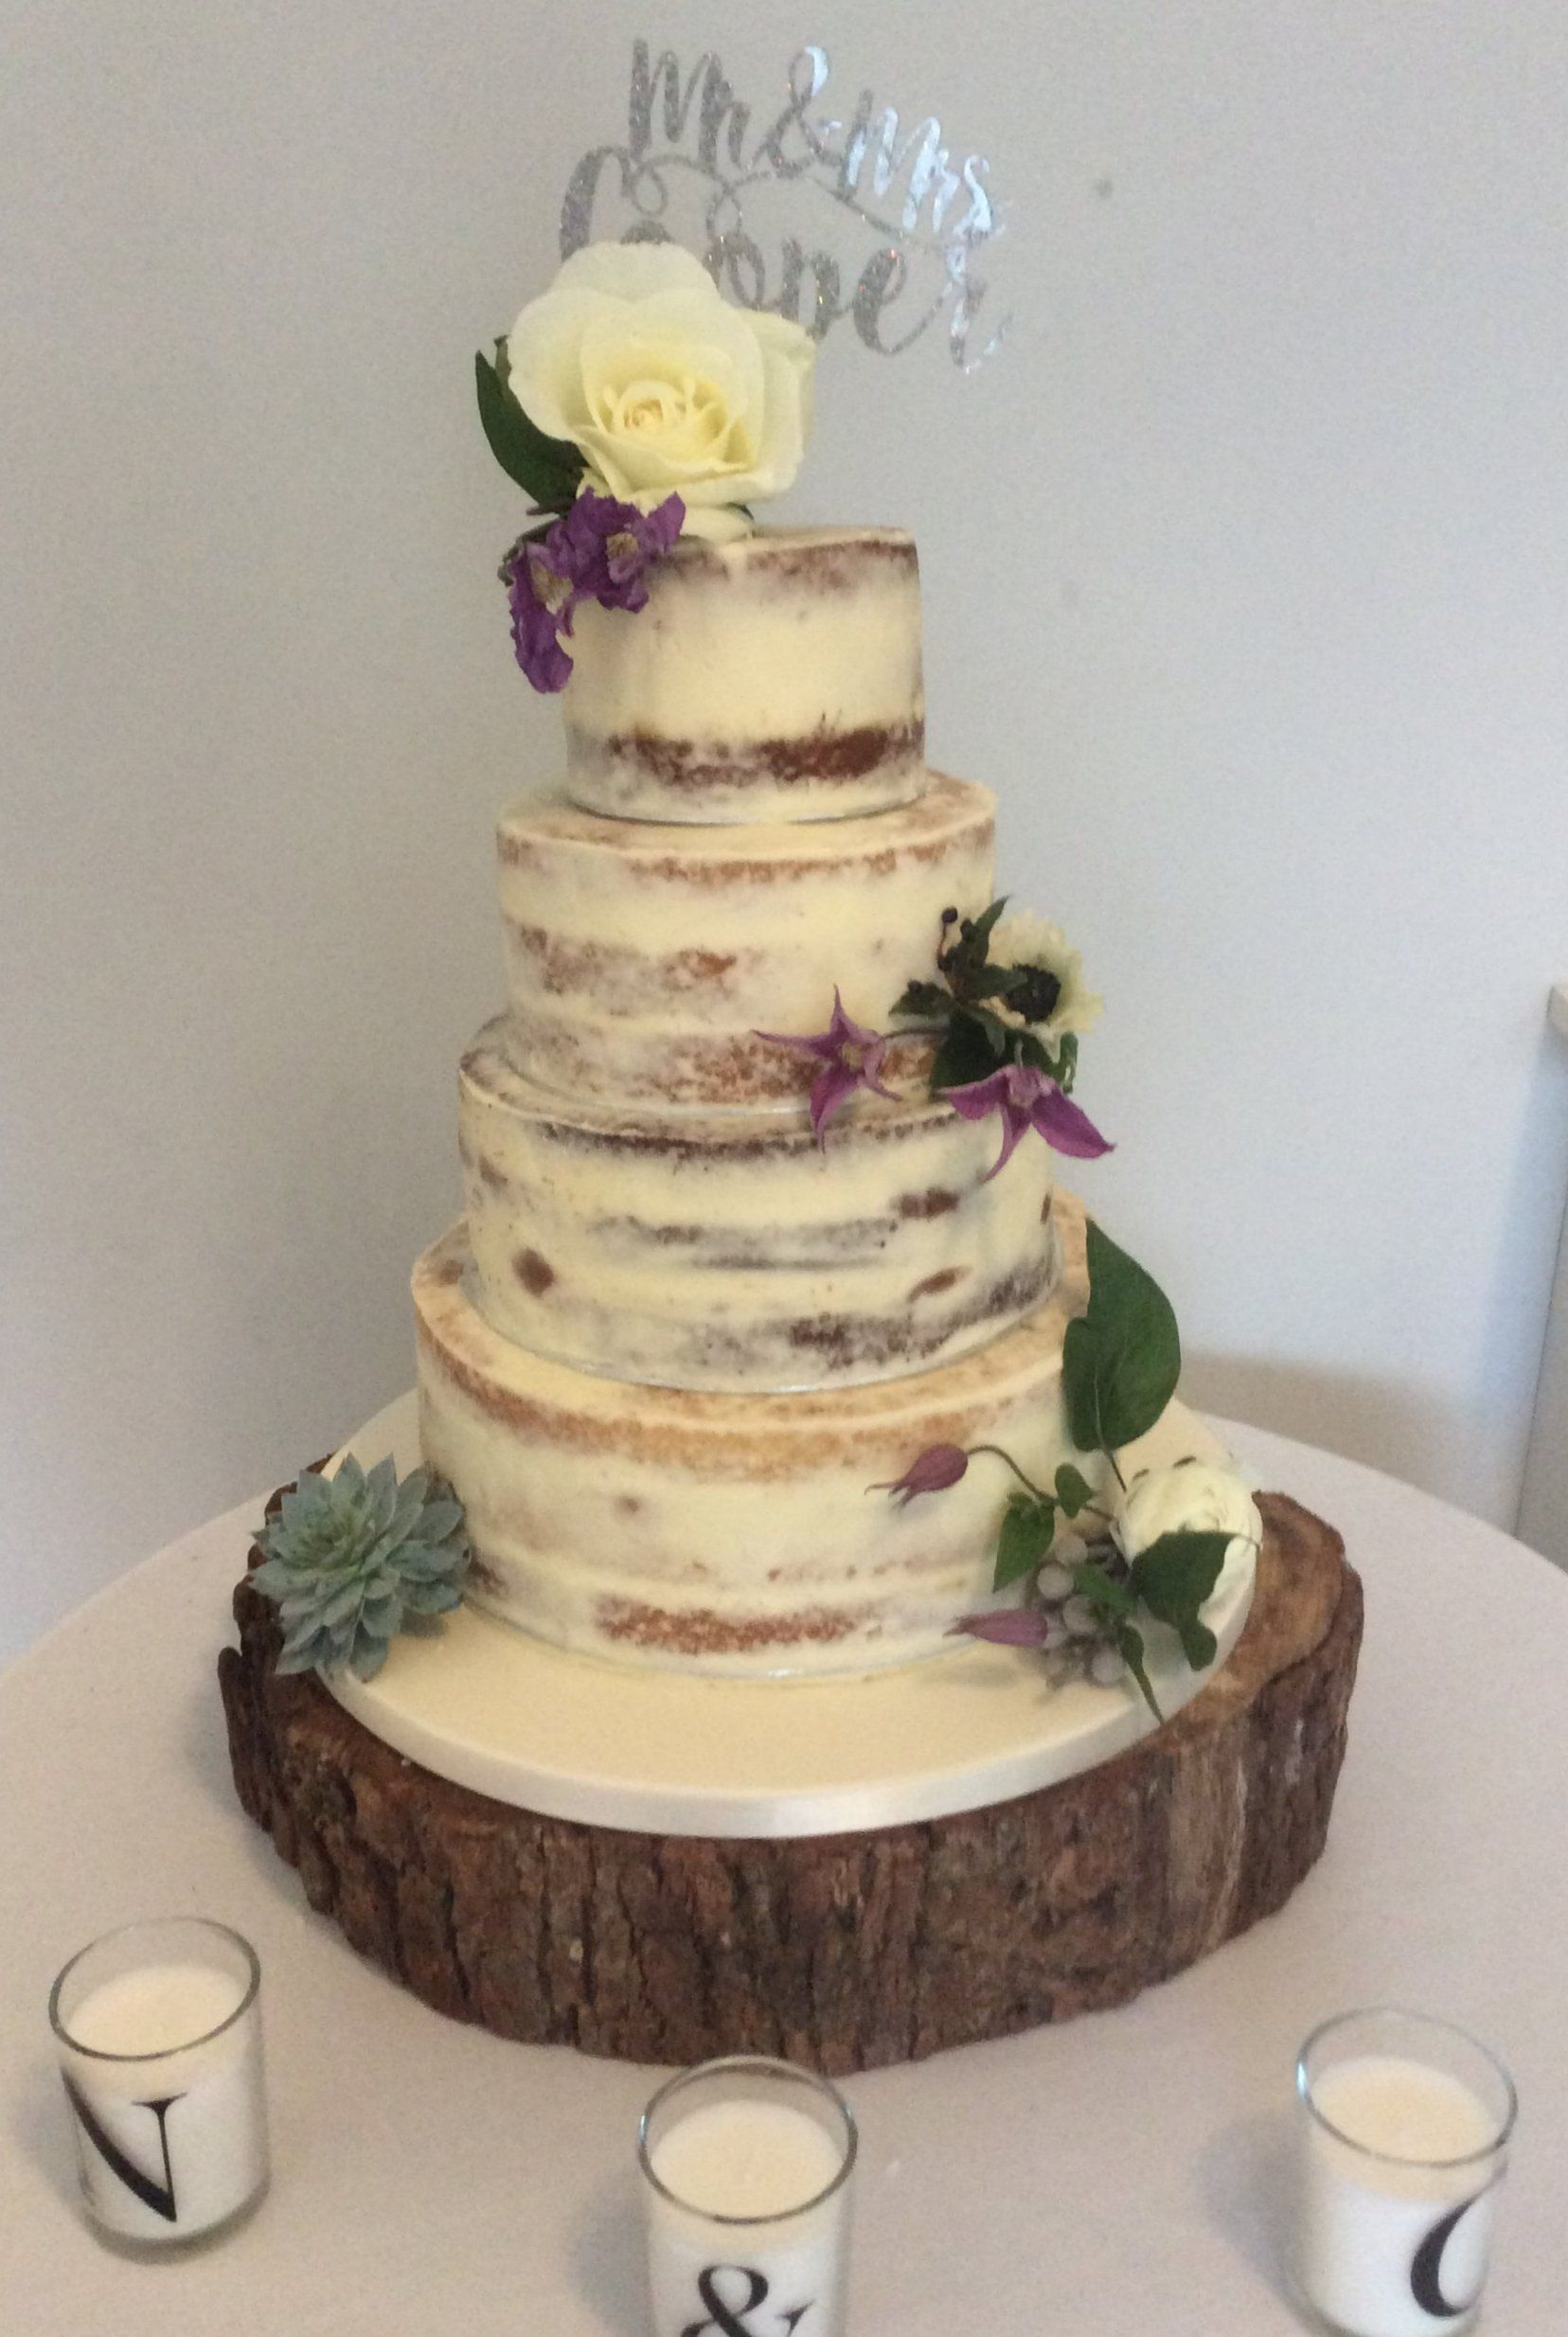 4 Tier Semi Naked Wedding Cake With Simple Rustic Style